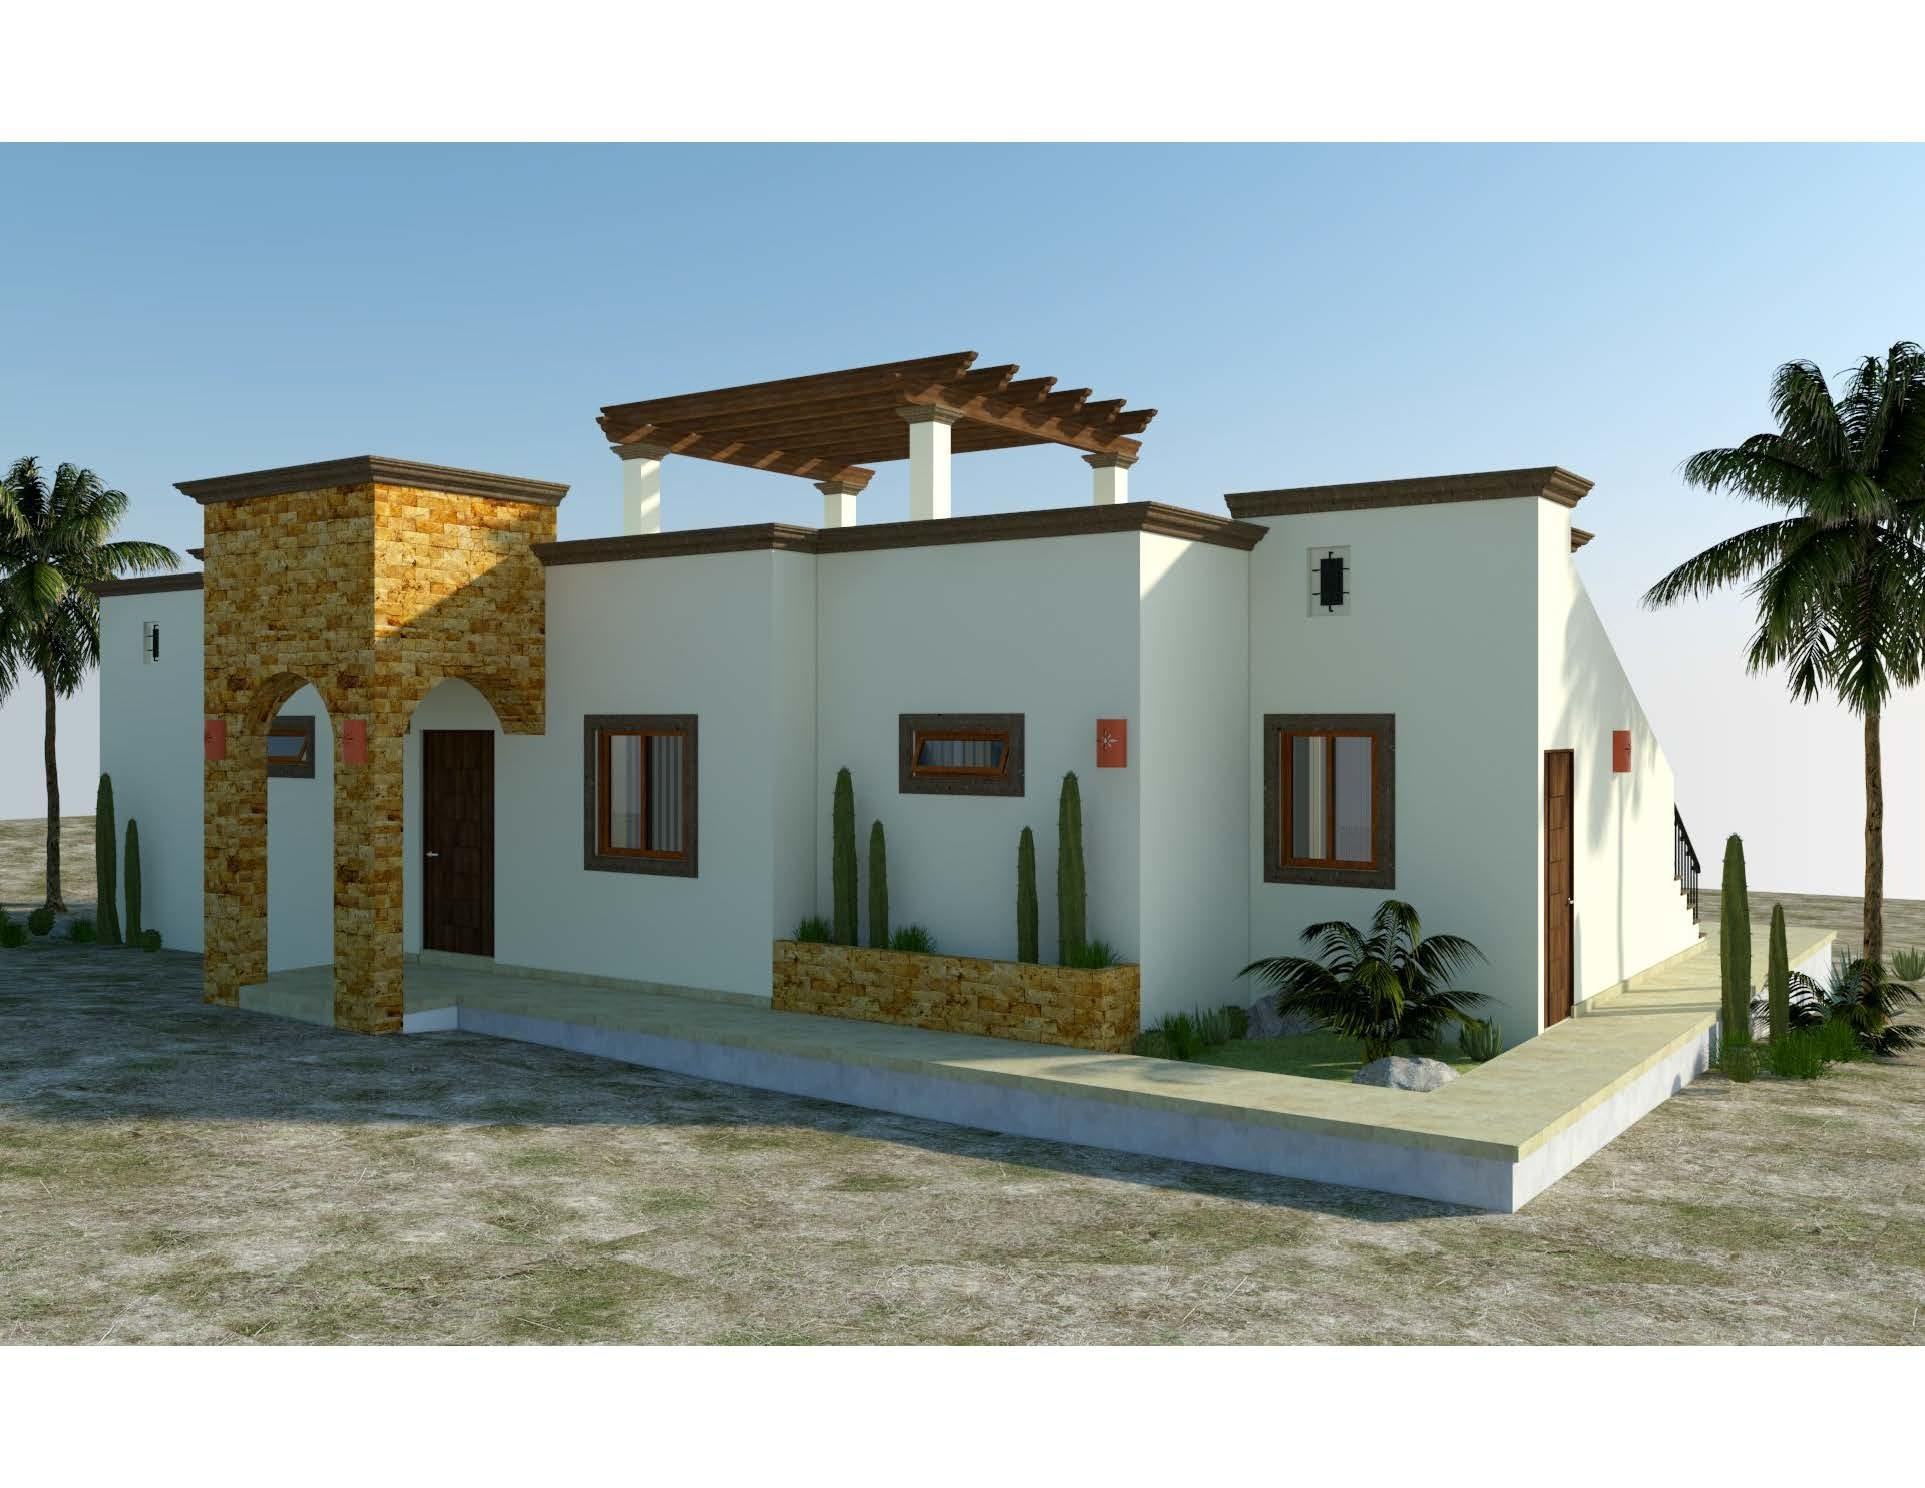 Casa Tesoro is one of 6 models to be built in the new, master-planned community of Villas del Centenario, Casa Tesoro is a 2BR/2BA home with 130m2/1,400ft2 of interior living area and a large 60m2/650ft2 wrap-around terrace. The soaring stone front entry welcomes visitors into an open living/kitchen/dining area featuring 10' ceilings and sliding glass doors that open onto the covered terrace. Custom-built hardwood cabinetry, oversized tile, granite countertops and stainless appliances are all included. The master suite features dual vanities in the bath, marble tiled shower and walk-in closets, with doors that open onto the patio. Other features include a laundry room and A/C units and ceiling fans in every room. Optional upgrades include a pool, spa, garage or garage/casita. The listing price includes the base home price plus a lot premium of $39,900. Lot premiums range from $39,900 - $79,900, so the final price of the home will vary based on the low selected. Also, some lots may require additional cost for retaining walls. The base price of the home includes all interior and exterior covered areas but extra terrace area is an upgrade. price does not include other options or upgrades.  Villas del Centenario is a private, gated community of homes located in the hills of El Centenario overlooking the Sea of Cortez with stunning ocean views. Now taking lot reservations with 50% deposit towards the lot premium.  The first homes to be built are expected to break ground in Fall 2021 (Phase I and II only), with completion averaging 9 months later. Please consult the listing agency for the full lot price list.